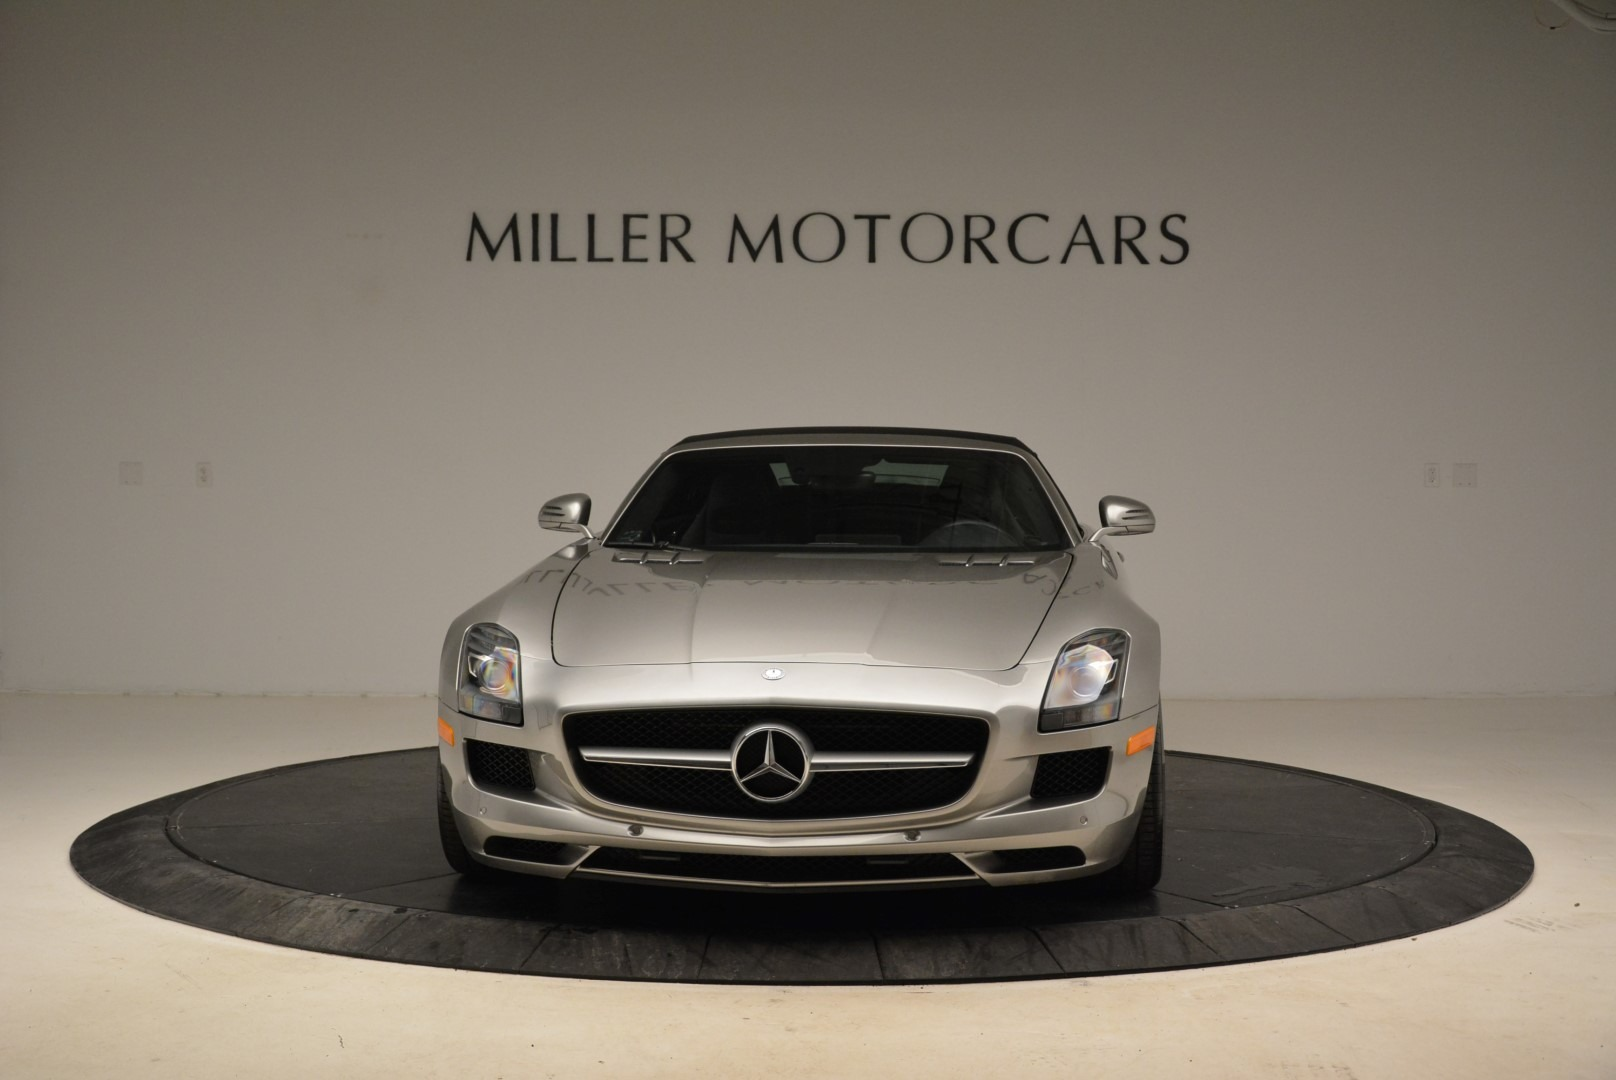 Used 2012 Mercedes-Benz SLS AMG  For Sale In Greenwich, CT. Alfa Romeo of Greenwich, 7330 2068_p20